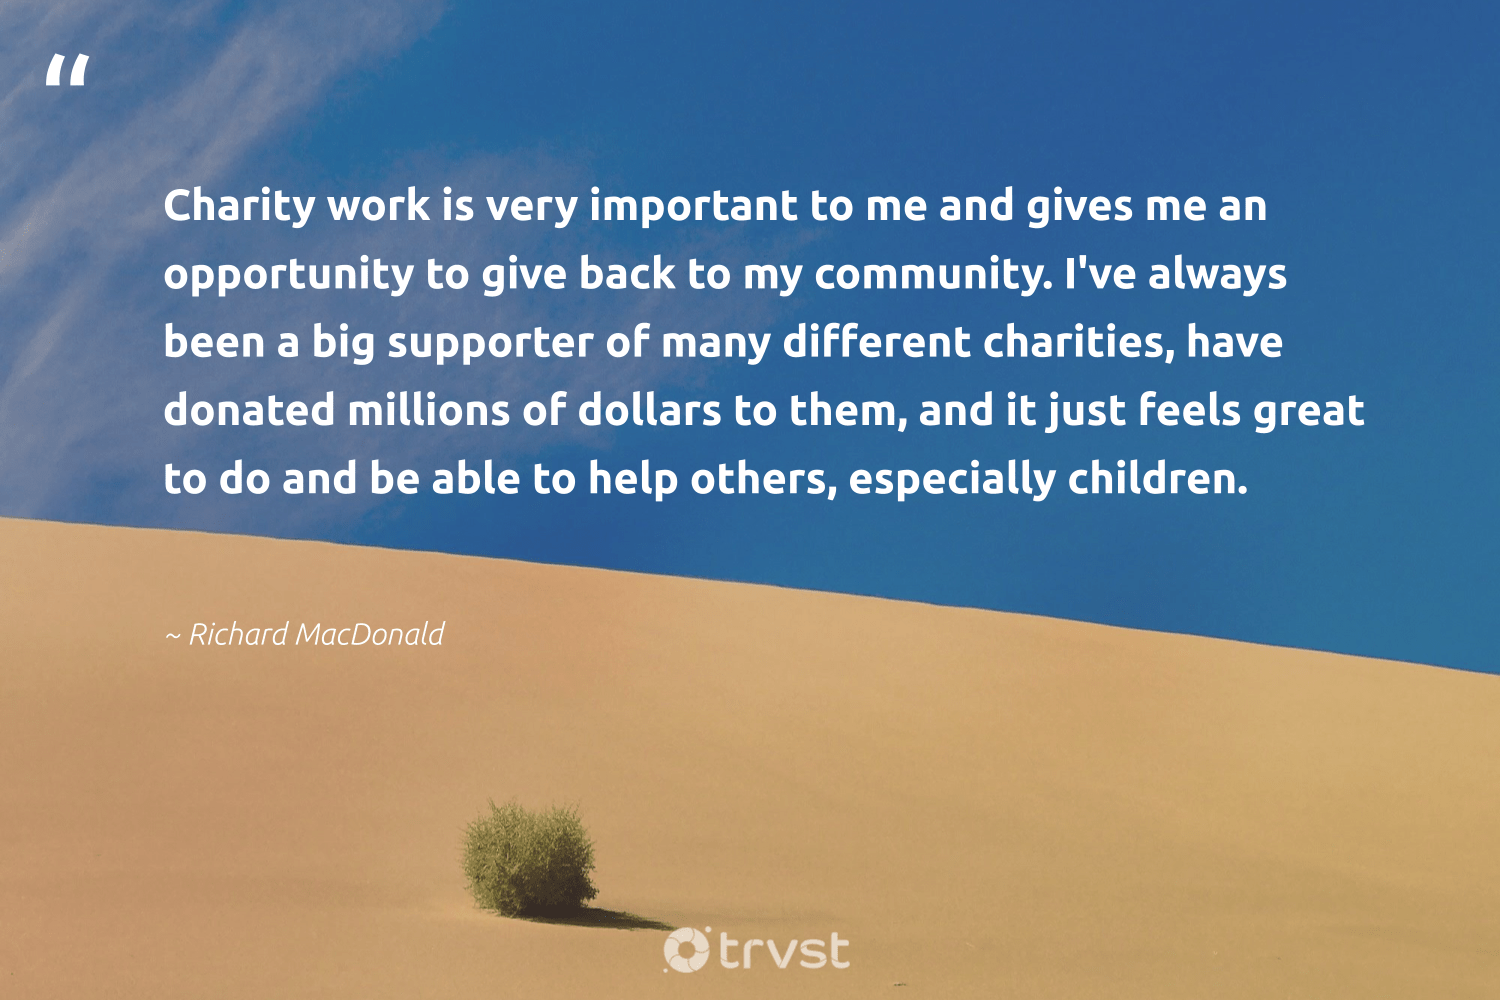 """""""Charity work is very important to me and gives me an opportunity to give back to my community. I've always been a big supporter of many different charities, have donated millions of dollars to them, and it just feels great to do and be able to help others, especially children.""""  - Richard MacDonald #trvst #quotes #givingback #giveback #children #changemakers #togetherwecan #beinspired #socialgood #giveforthefuture #itscooltobekind #takeaction"""